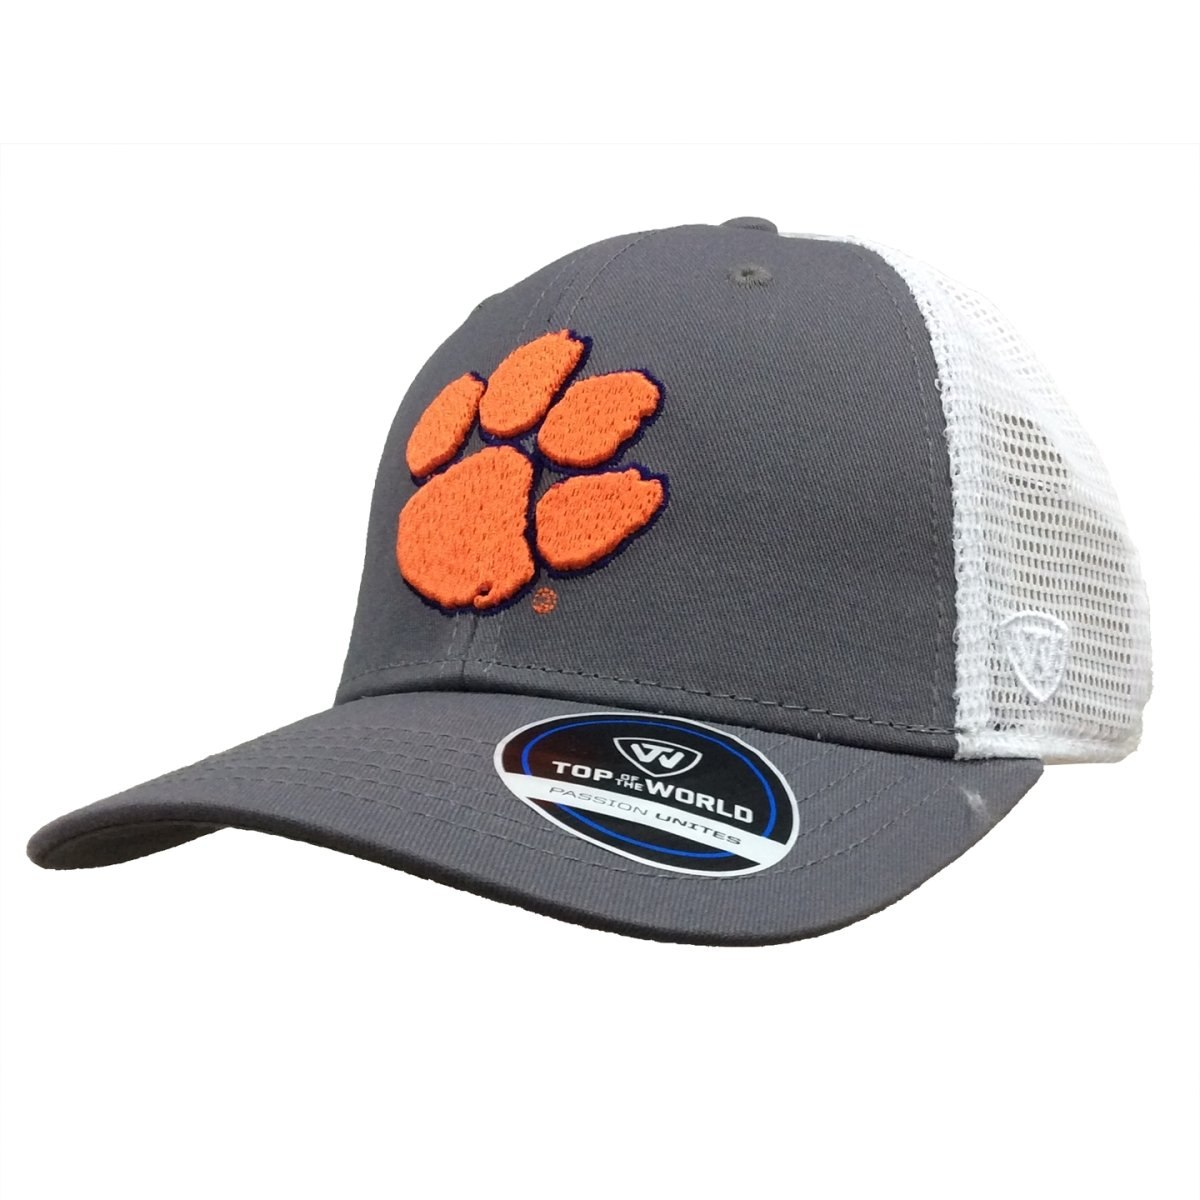 Top of the World Clemson Tigers Bb Adjustable Trucker Hat - Mr. Knickerbocker